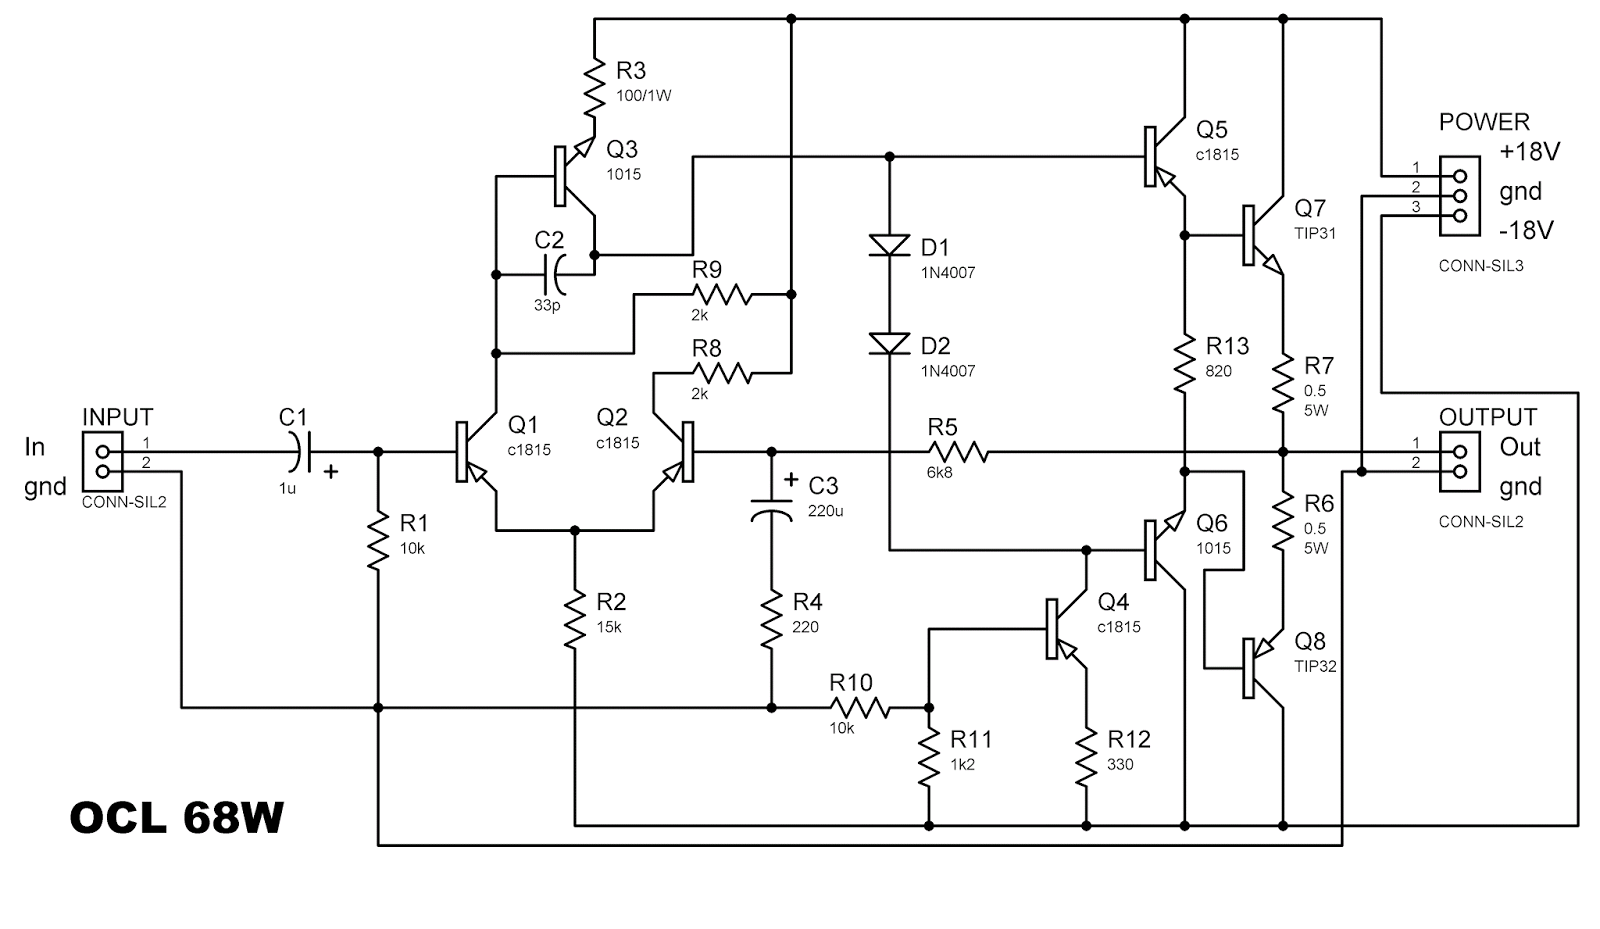 medium resolution of ocl 68 watt power amplifier in 2019 audio audio amplifier voltagemonitorcomparator amplifiercircuit circuit diagram